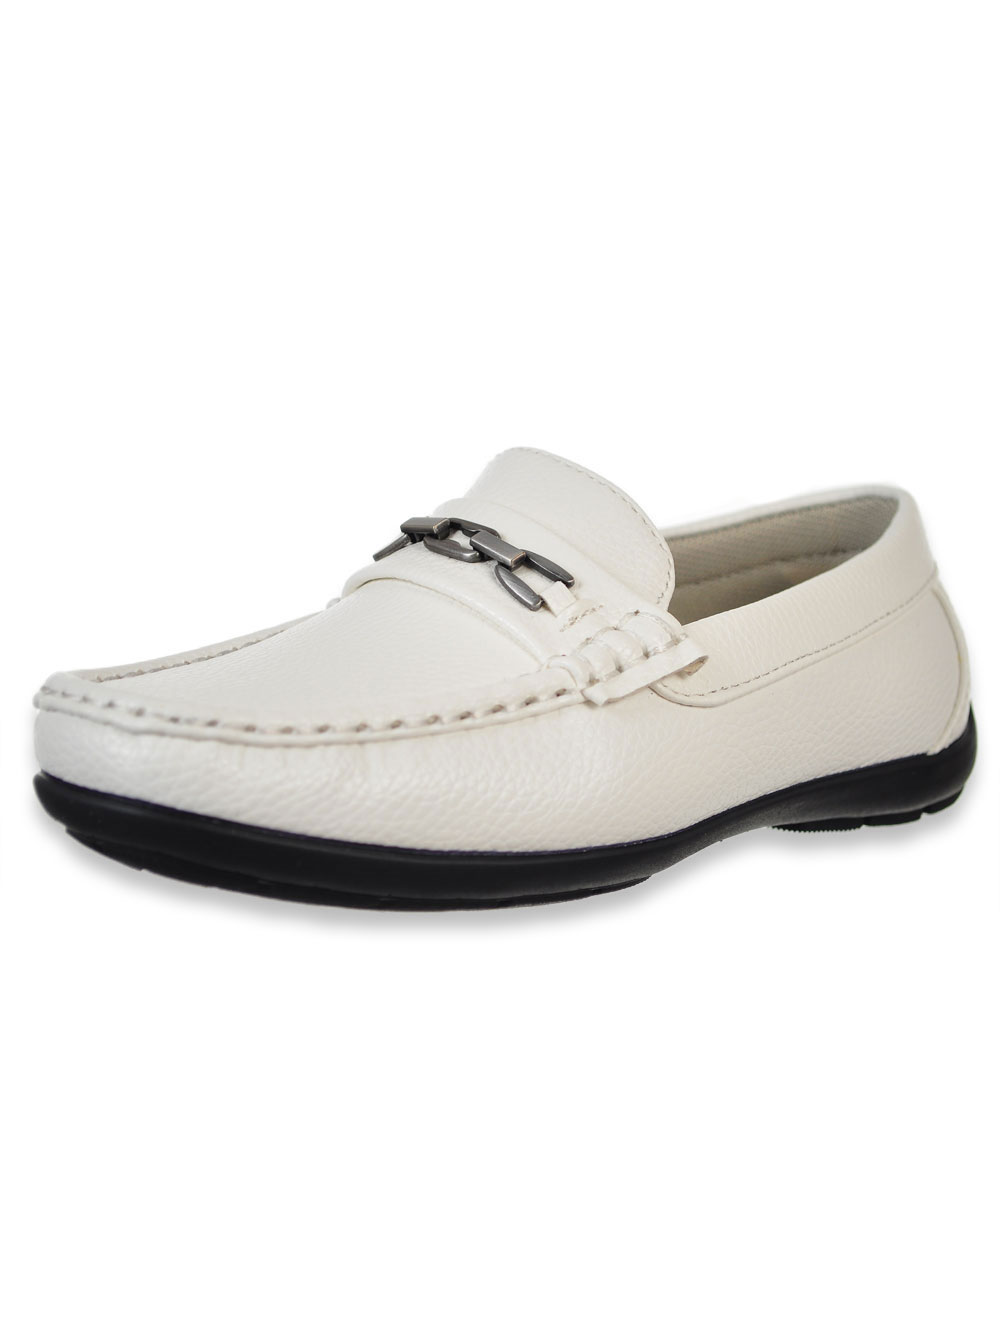 Easy Strider Boys Loafers